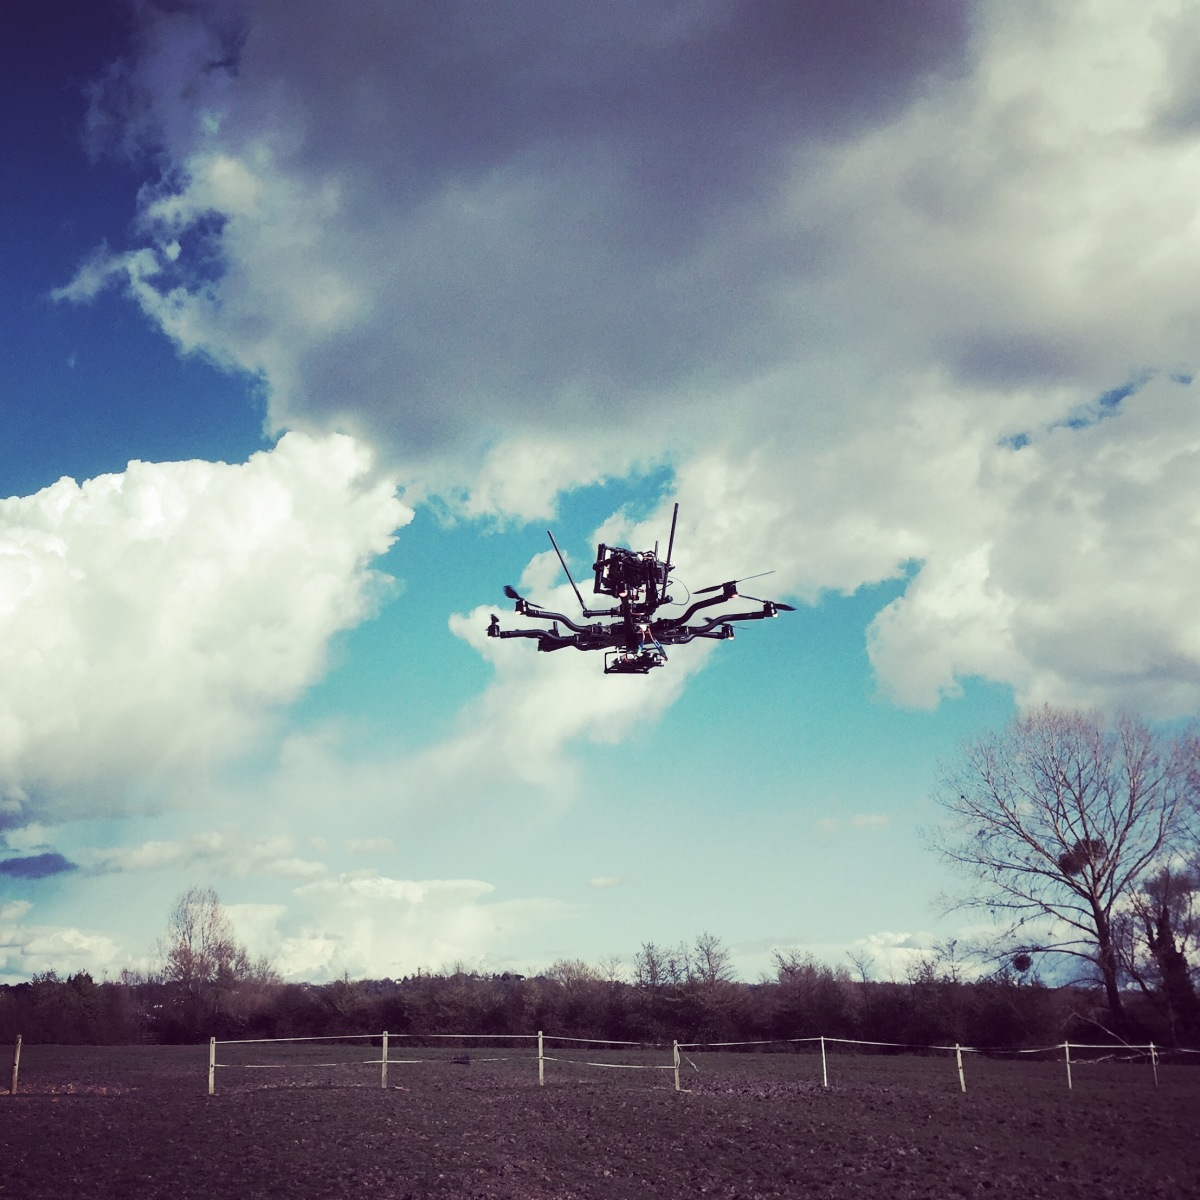 Drone Filming, UK, Bristol, Aerial Filming, UAV, Freefly, Alta 8, sky view, drone, top mounted, Alexa mini, flying camera company, UAV, Movi M15